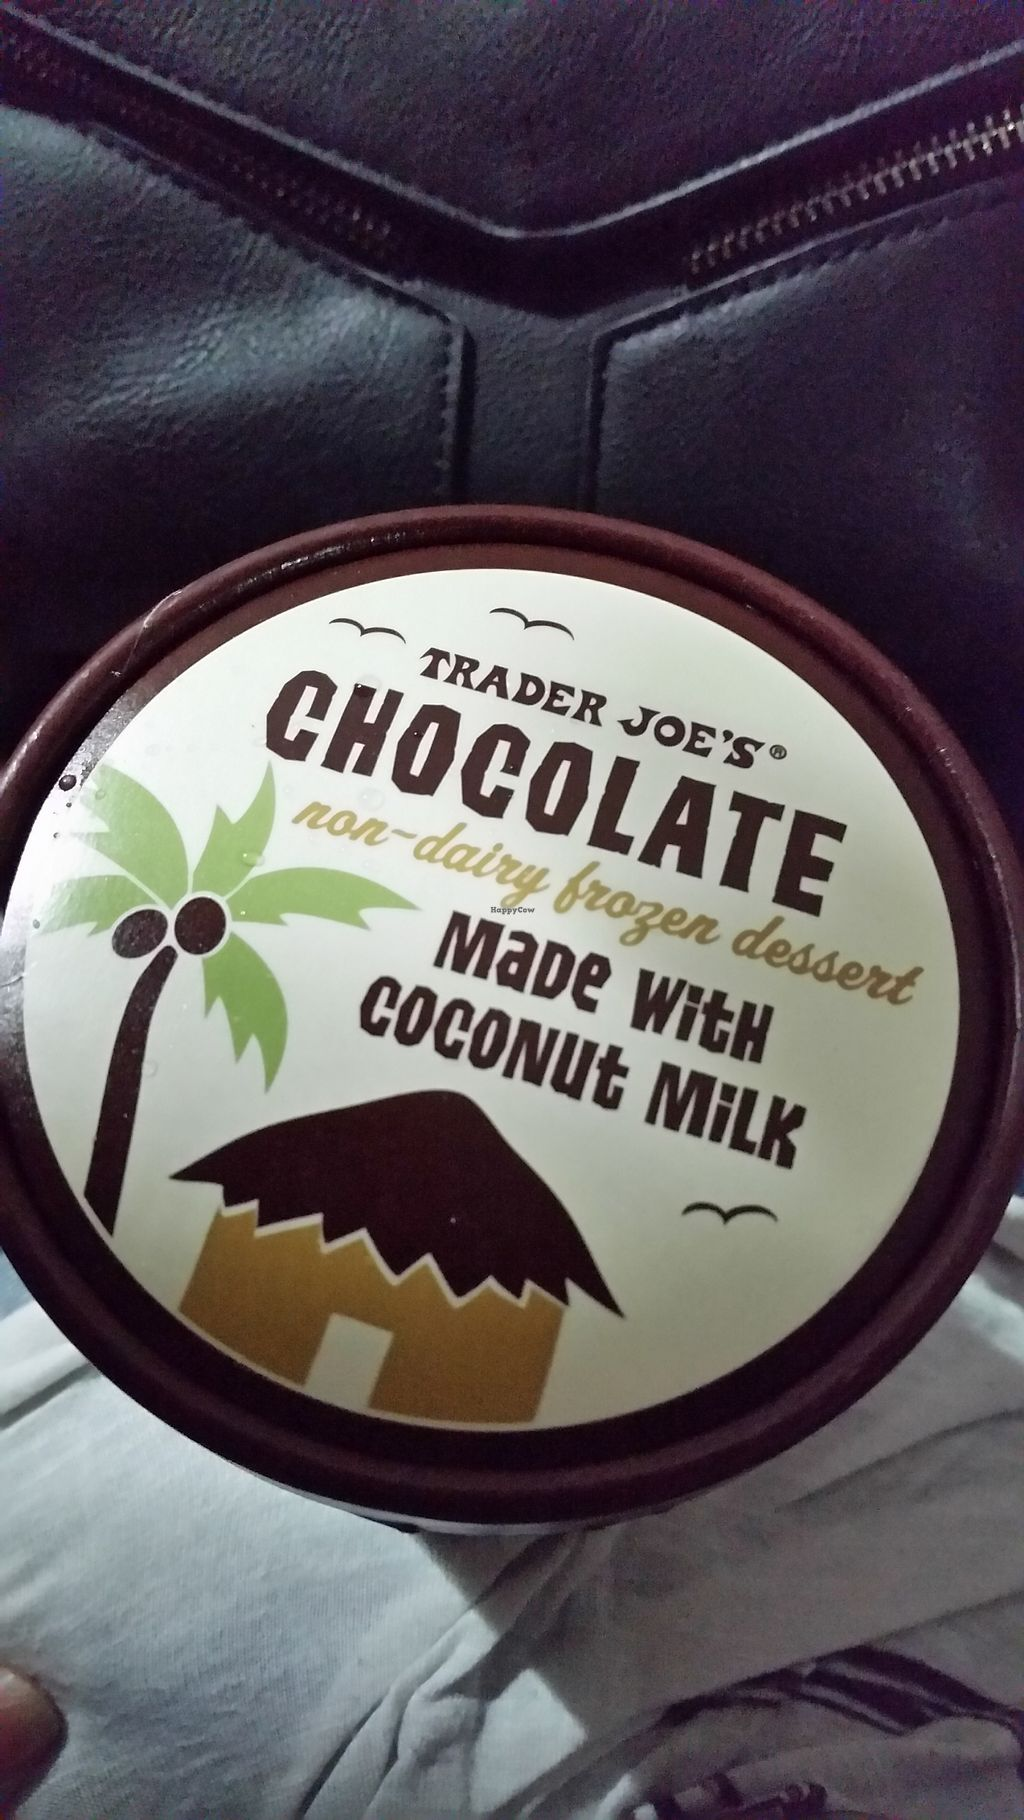 """Photo of Trader Joe's - Fairfax  by <a href=""""/members/profile/TheCopperValkyrie"""">TheCopperValkyrie</a> <br/>Best chocolate ice cream I've ever had.  <br/> August 5, 2017  - <a href='/contact/abuse/image/22457/289212'>Report</a>"""